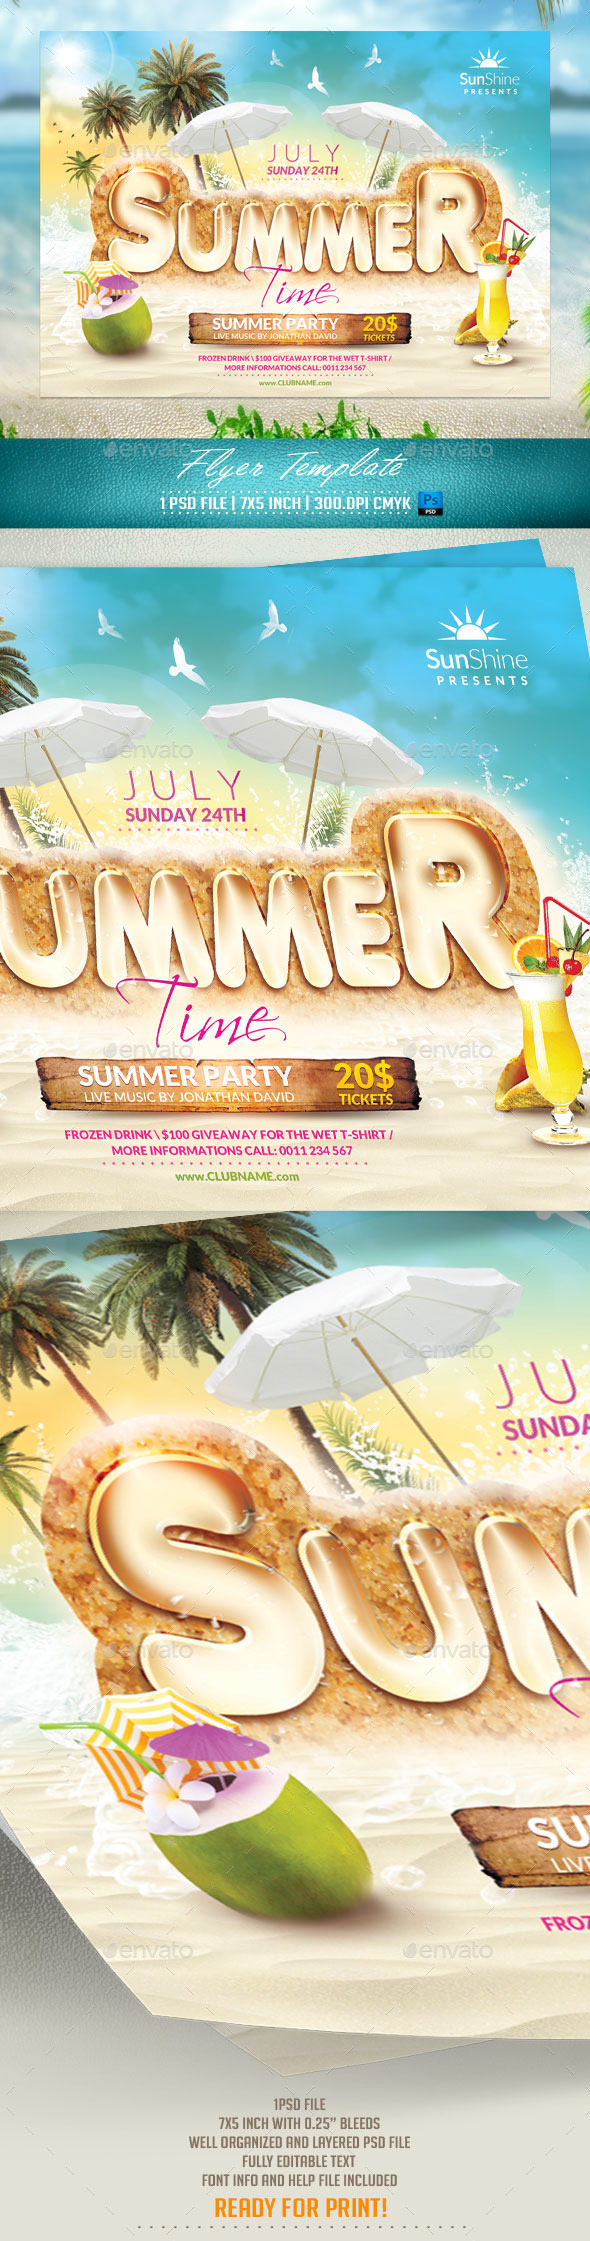 GraphicRiver Summer Time Flyer Template 11531016